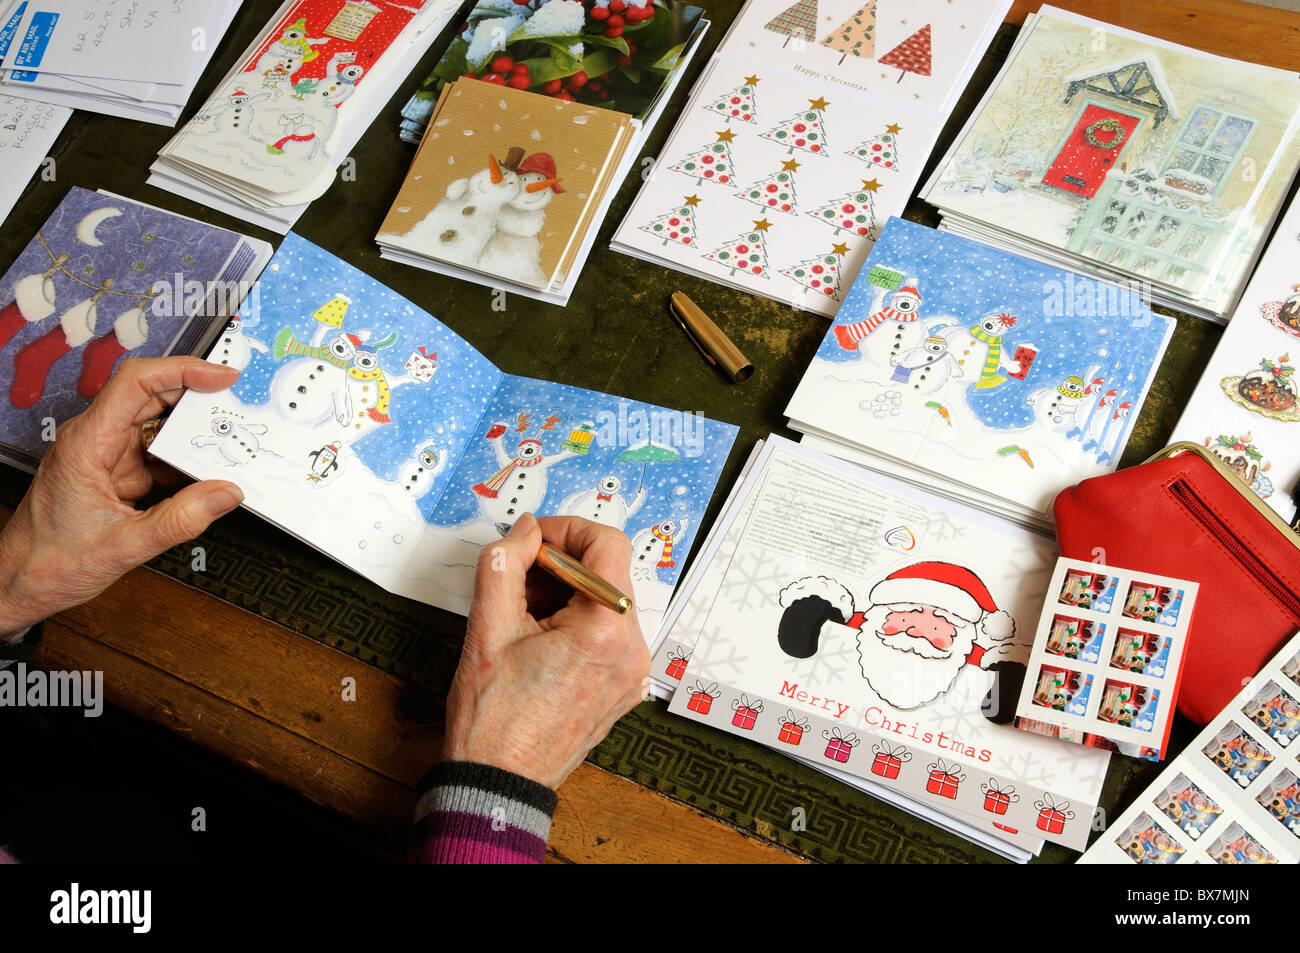 Writing festive christmas greetings cards stock photo 33361293 alamy writing festive christmas greetings cards m4hsunfo